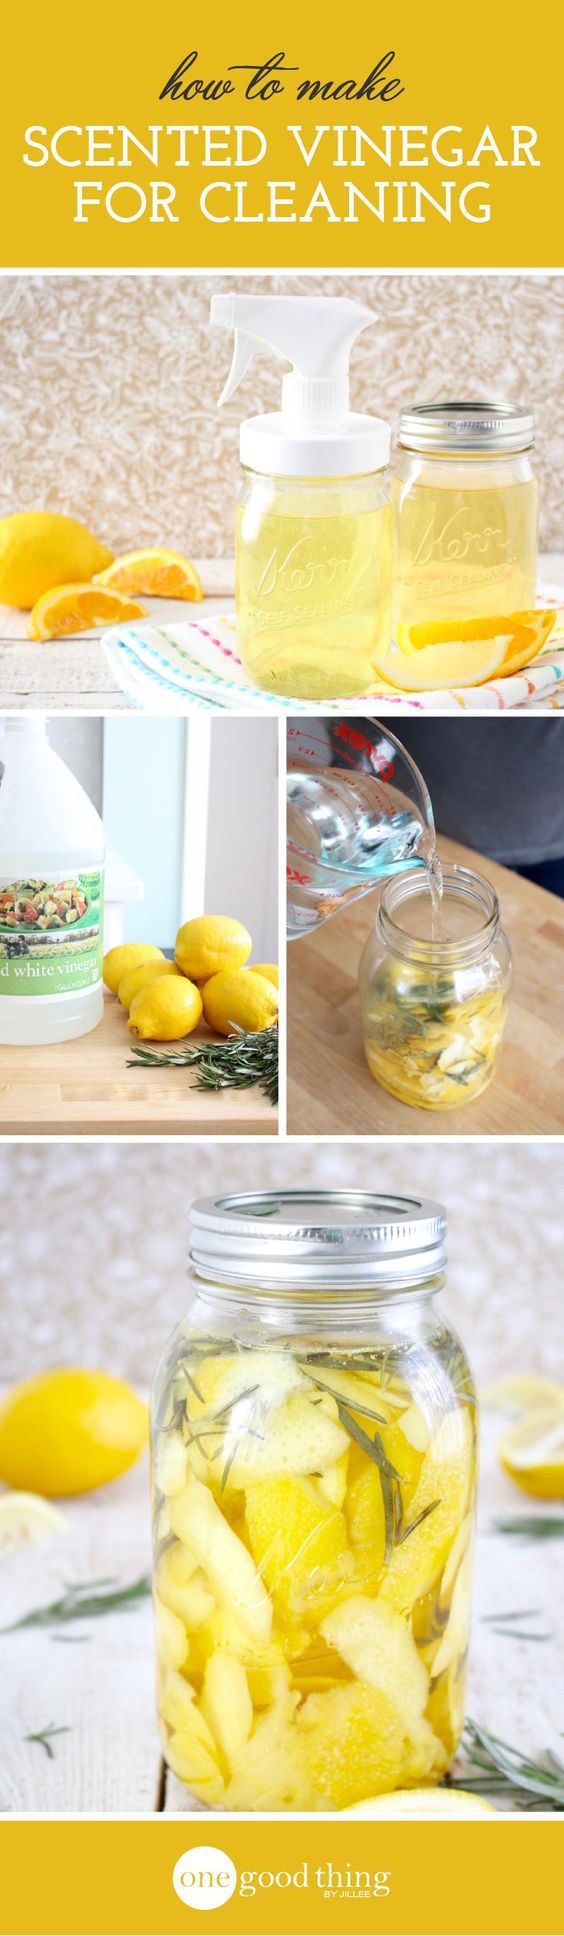 cleaning tips -Scented Cleaning Vinegar